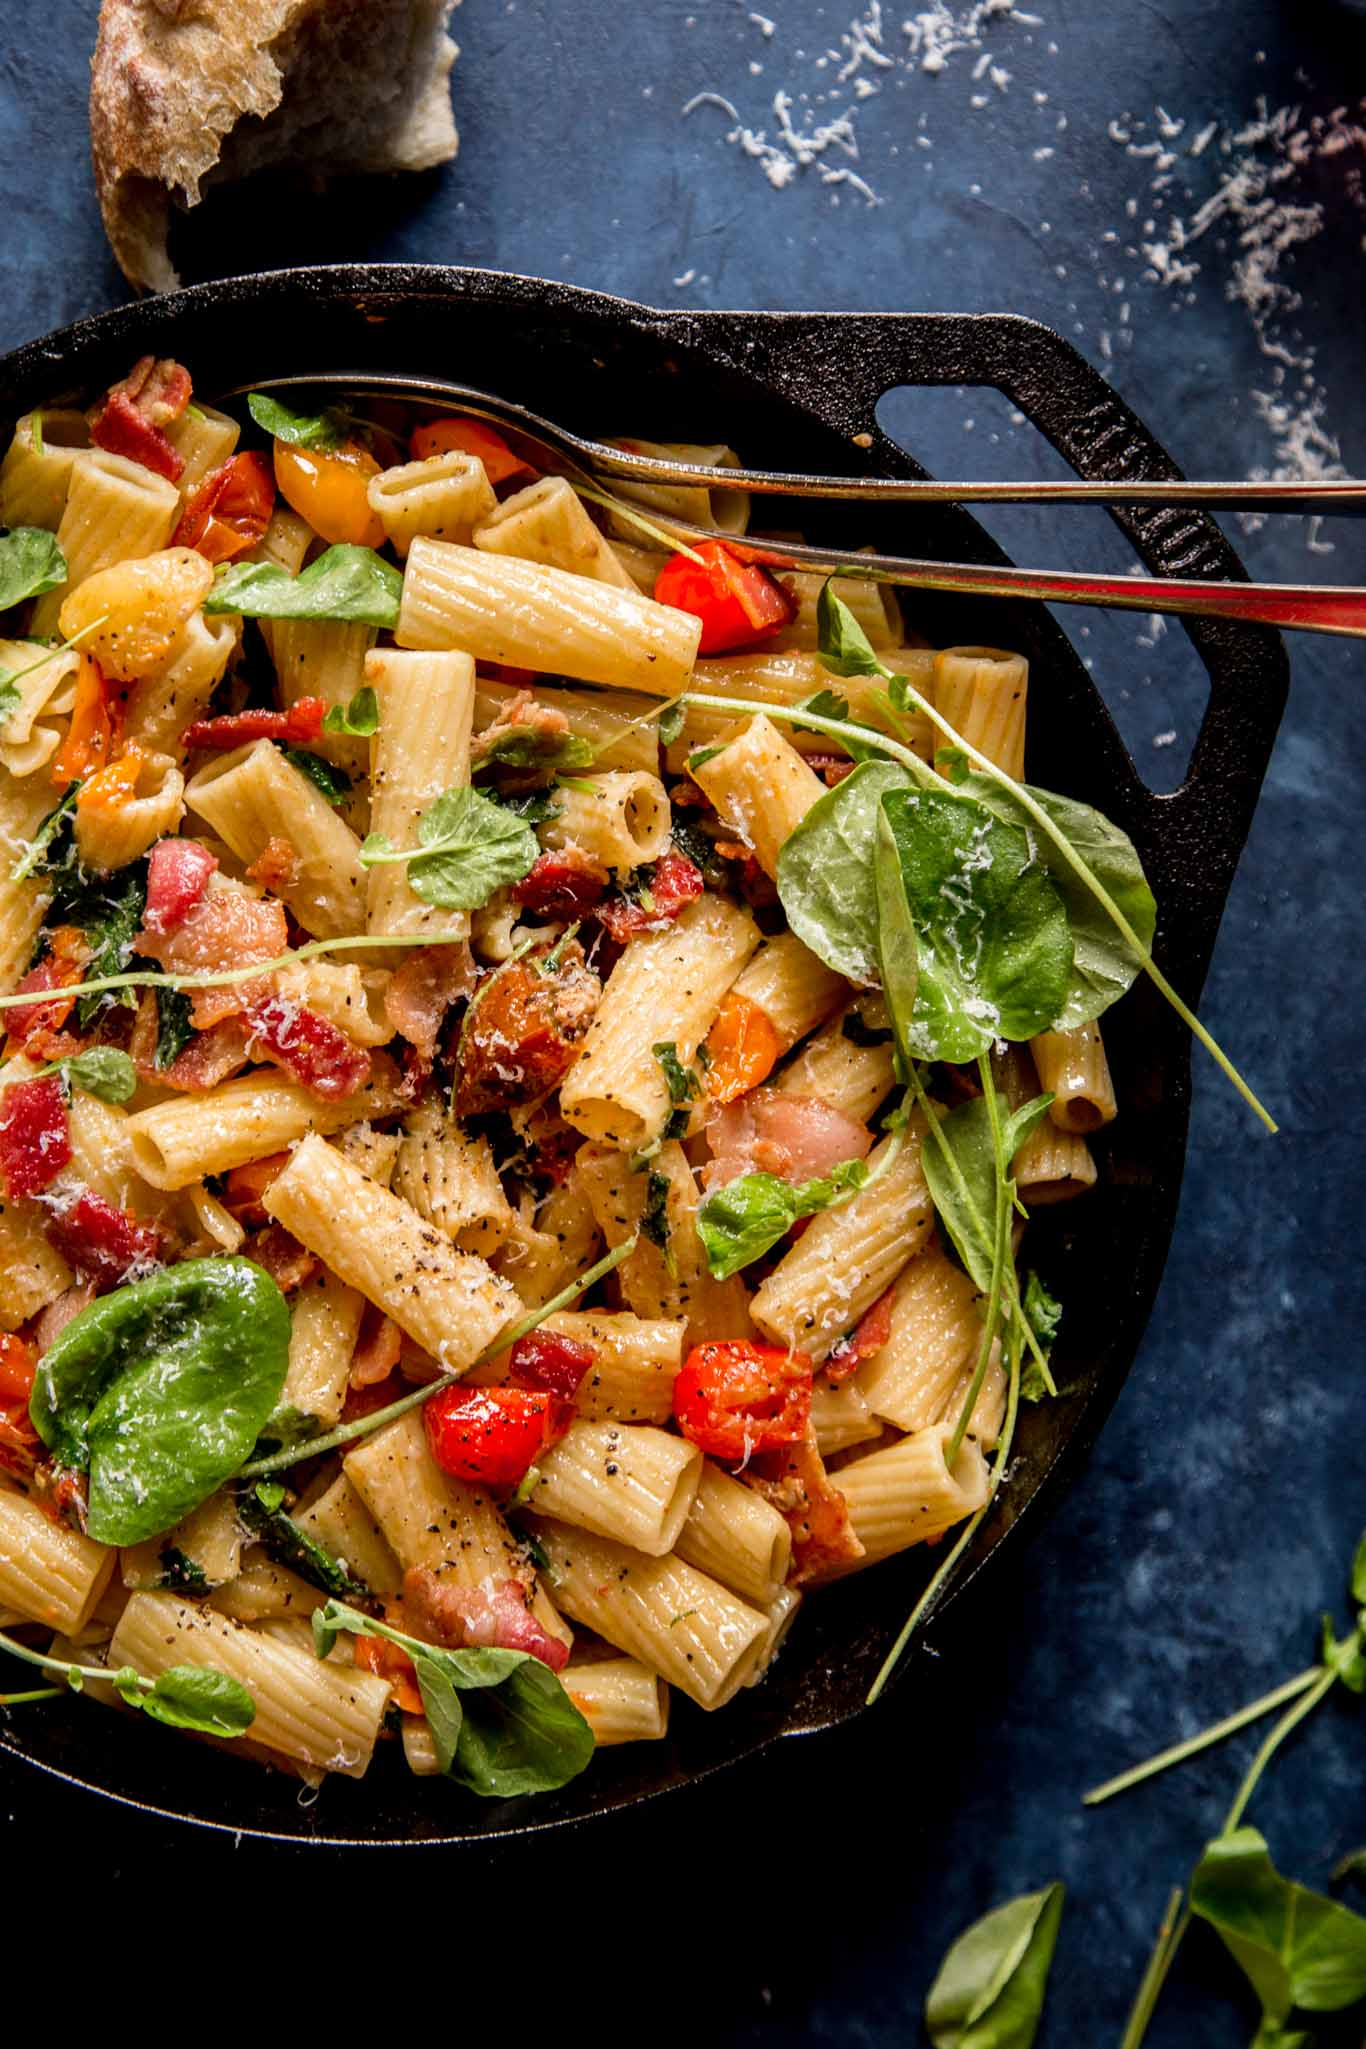 Make this BLT Pasta for a budget-friendly date night dinner at home. All the ingredients, including a bottle of wine, come in at under $30!